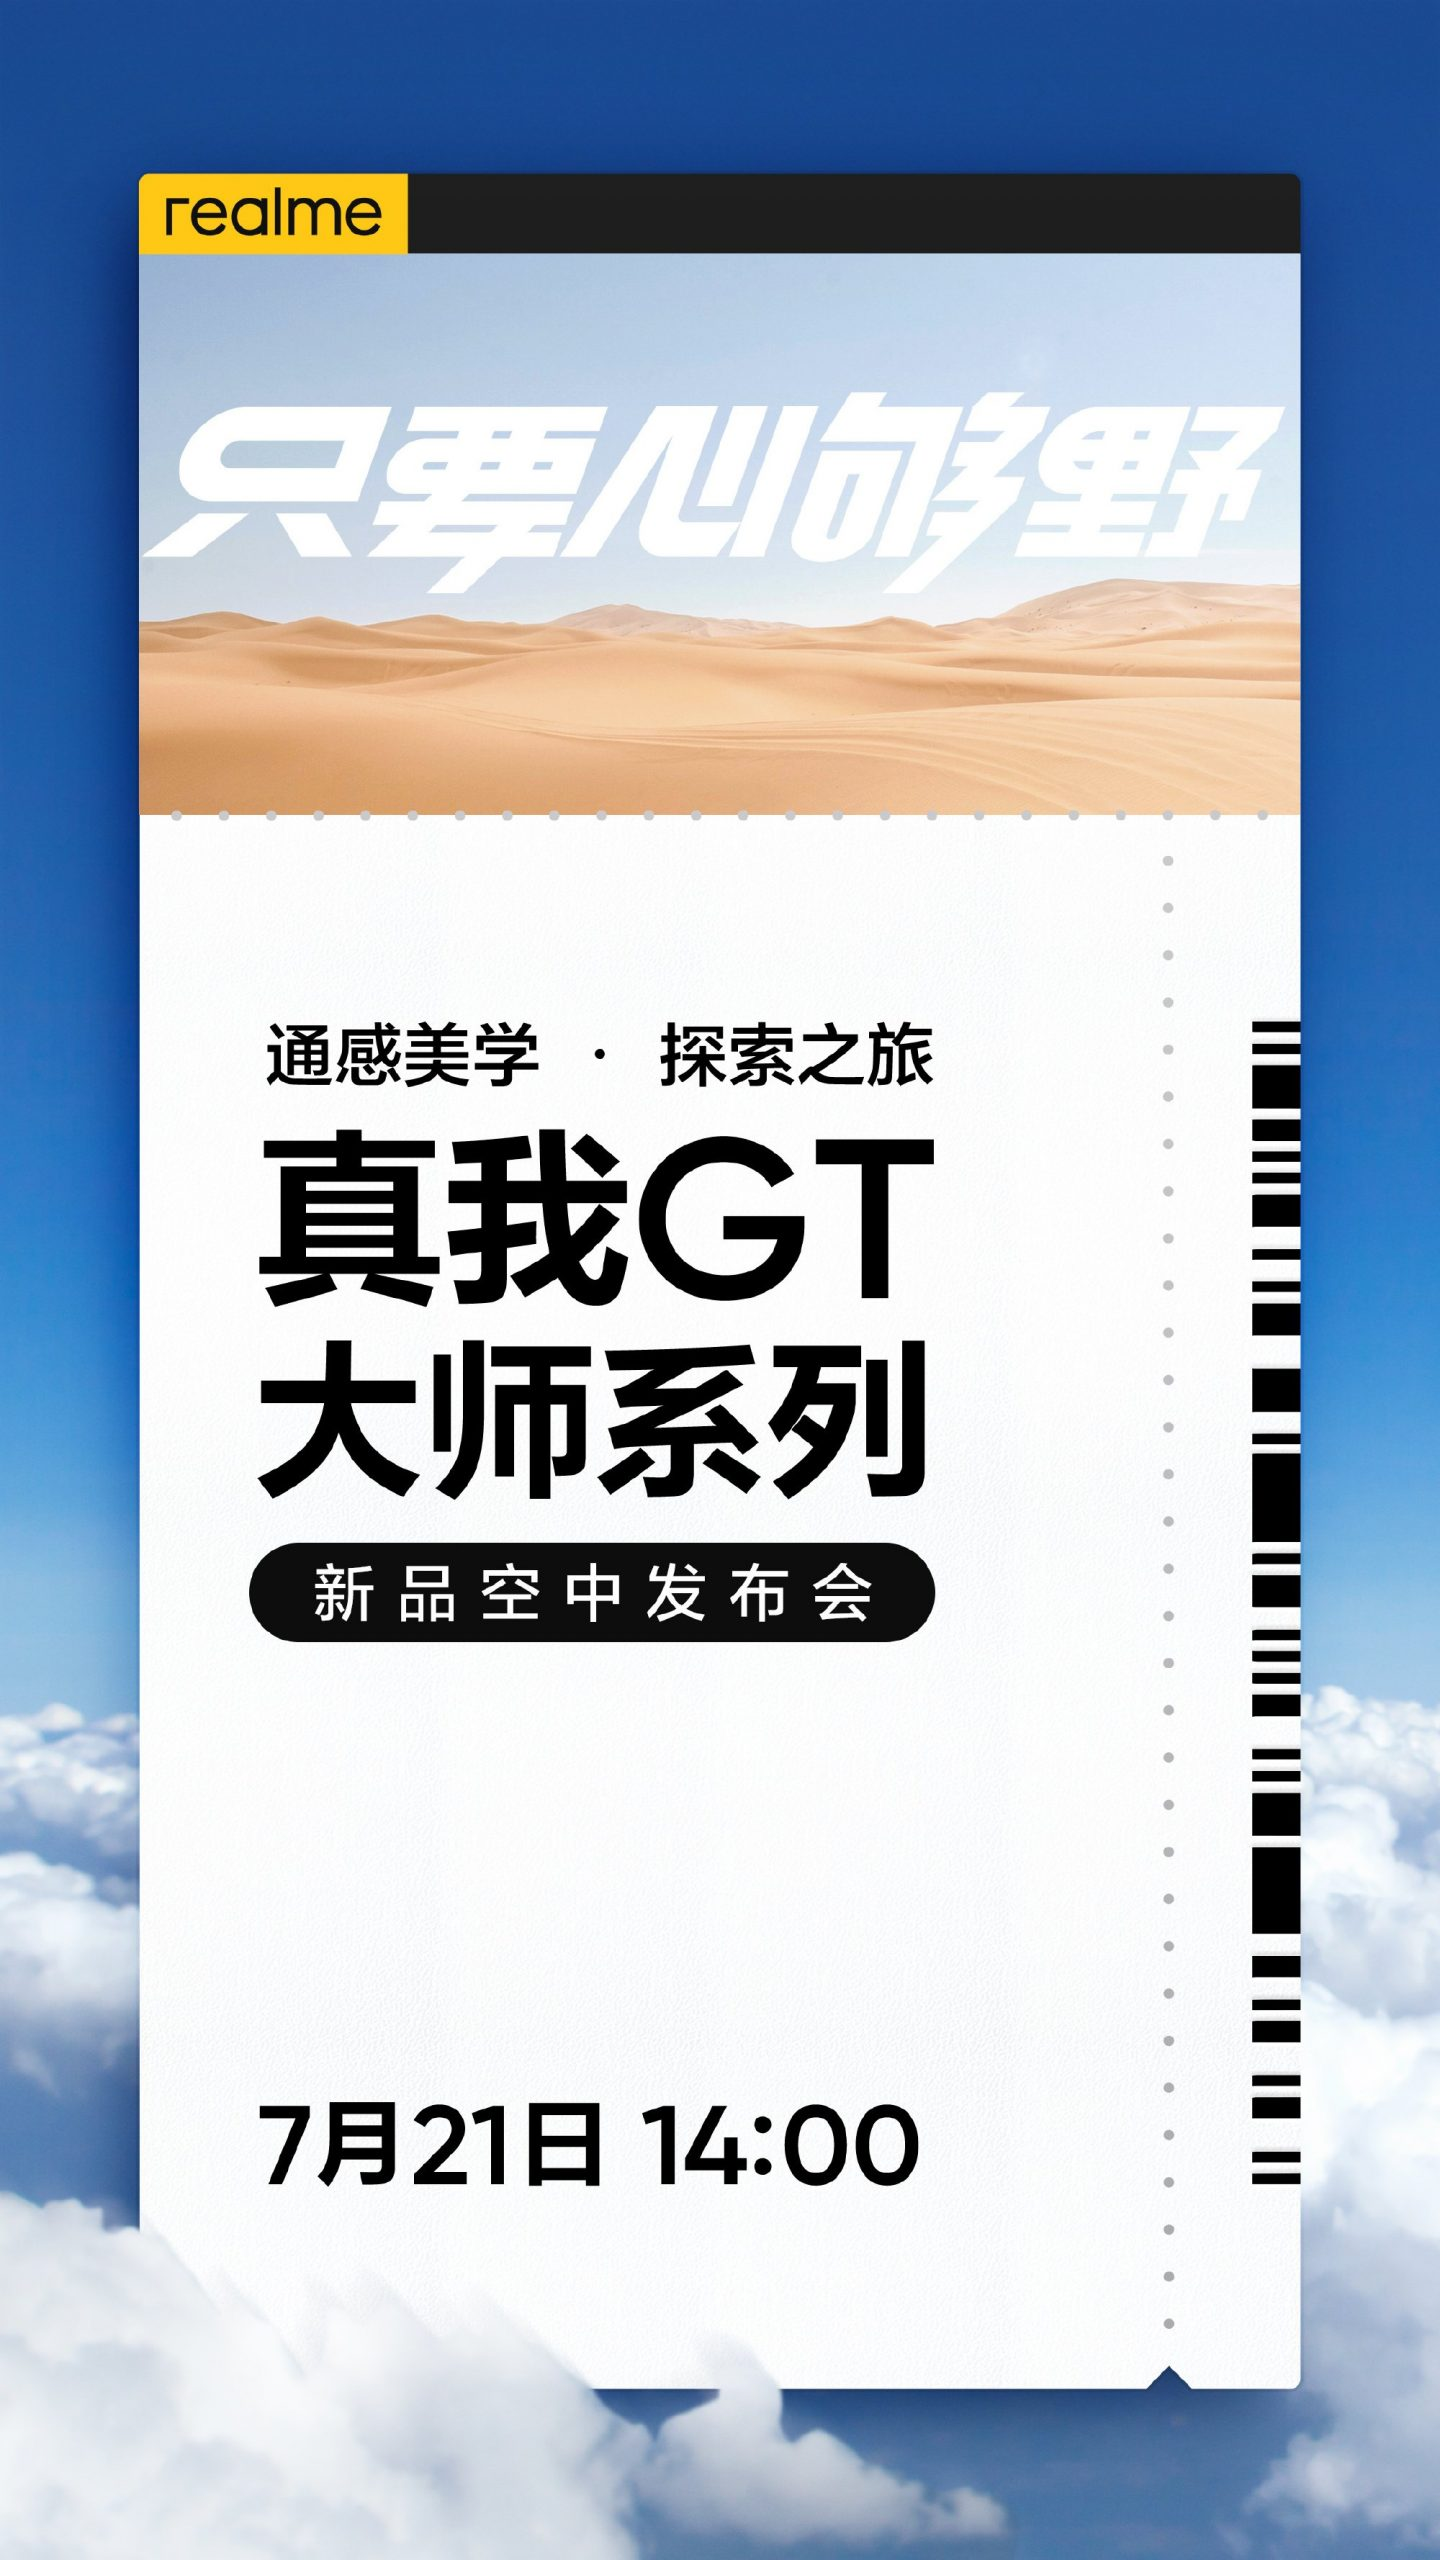 Realme GT Master Edition Launches on July 21 With 120Hz AMOLED Display and 65W Fast Charging